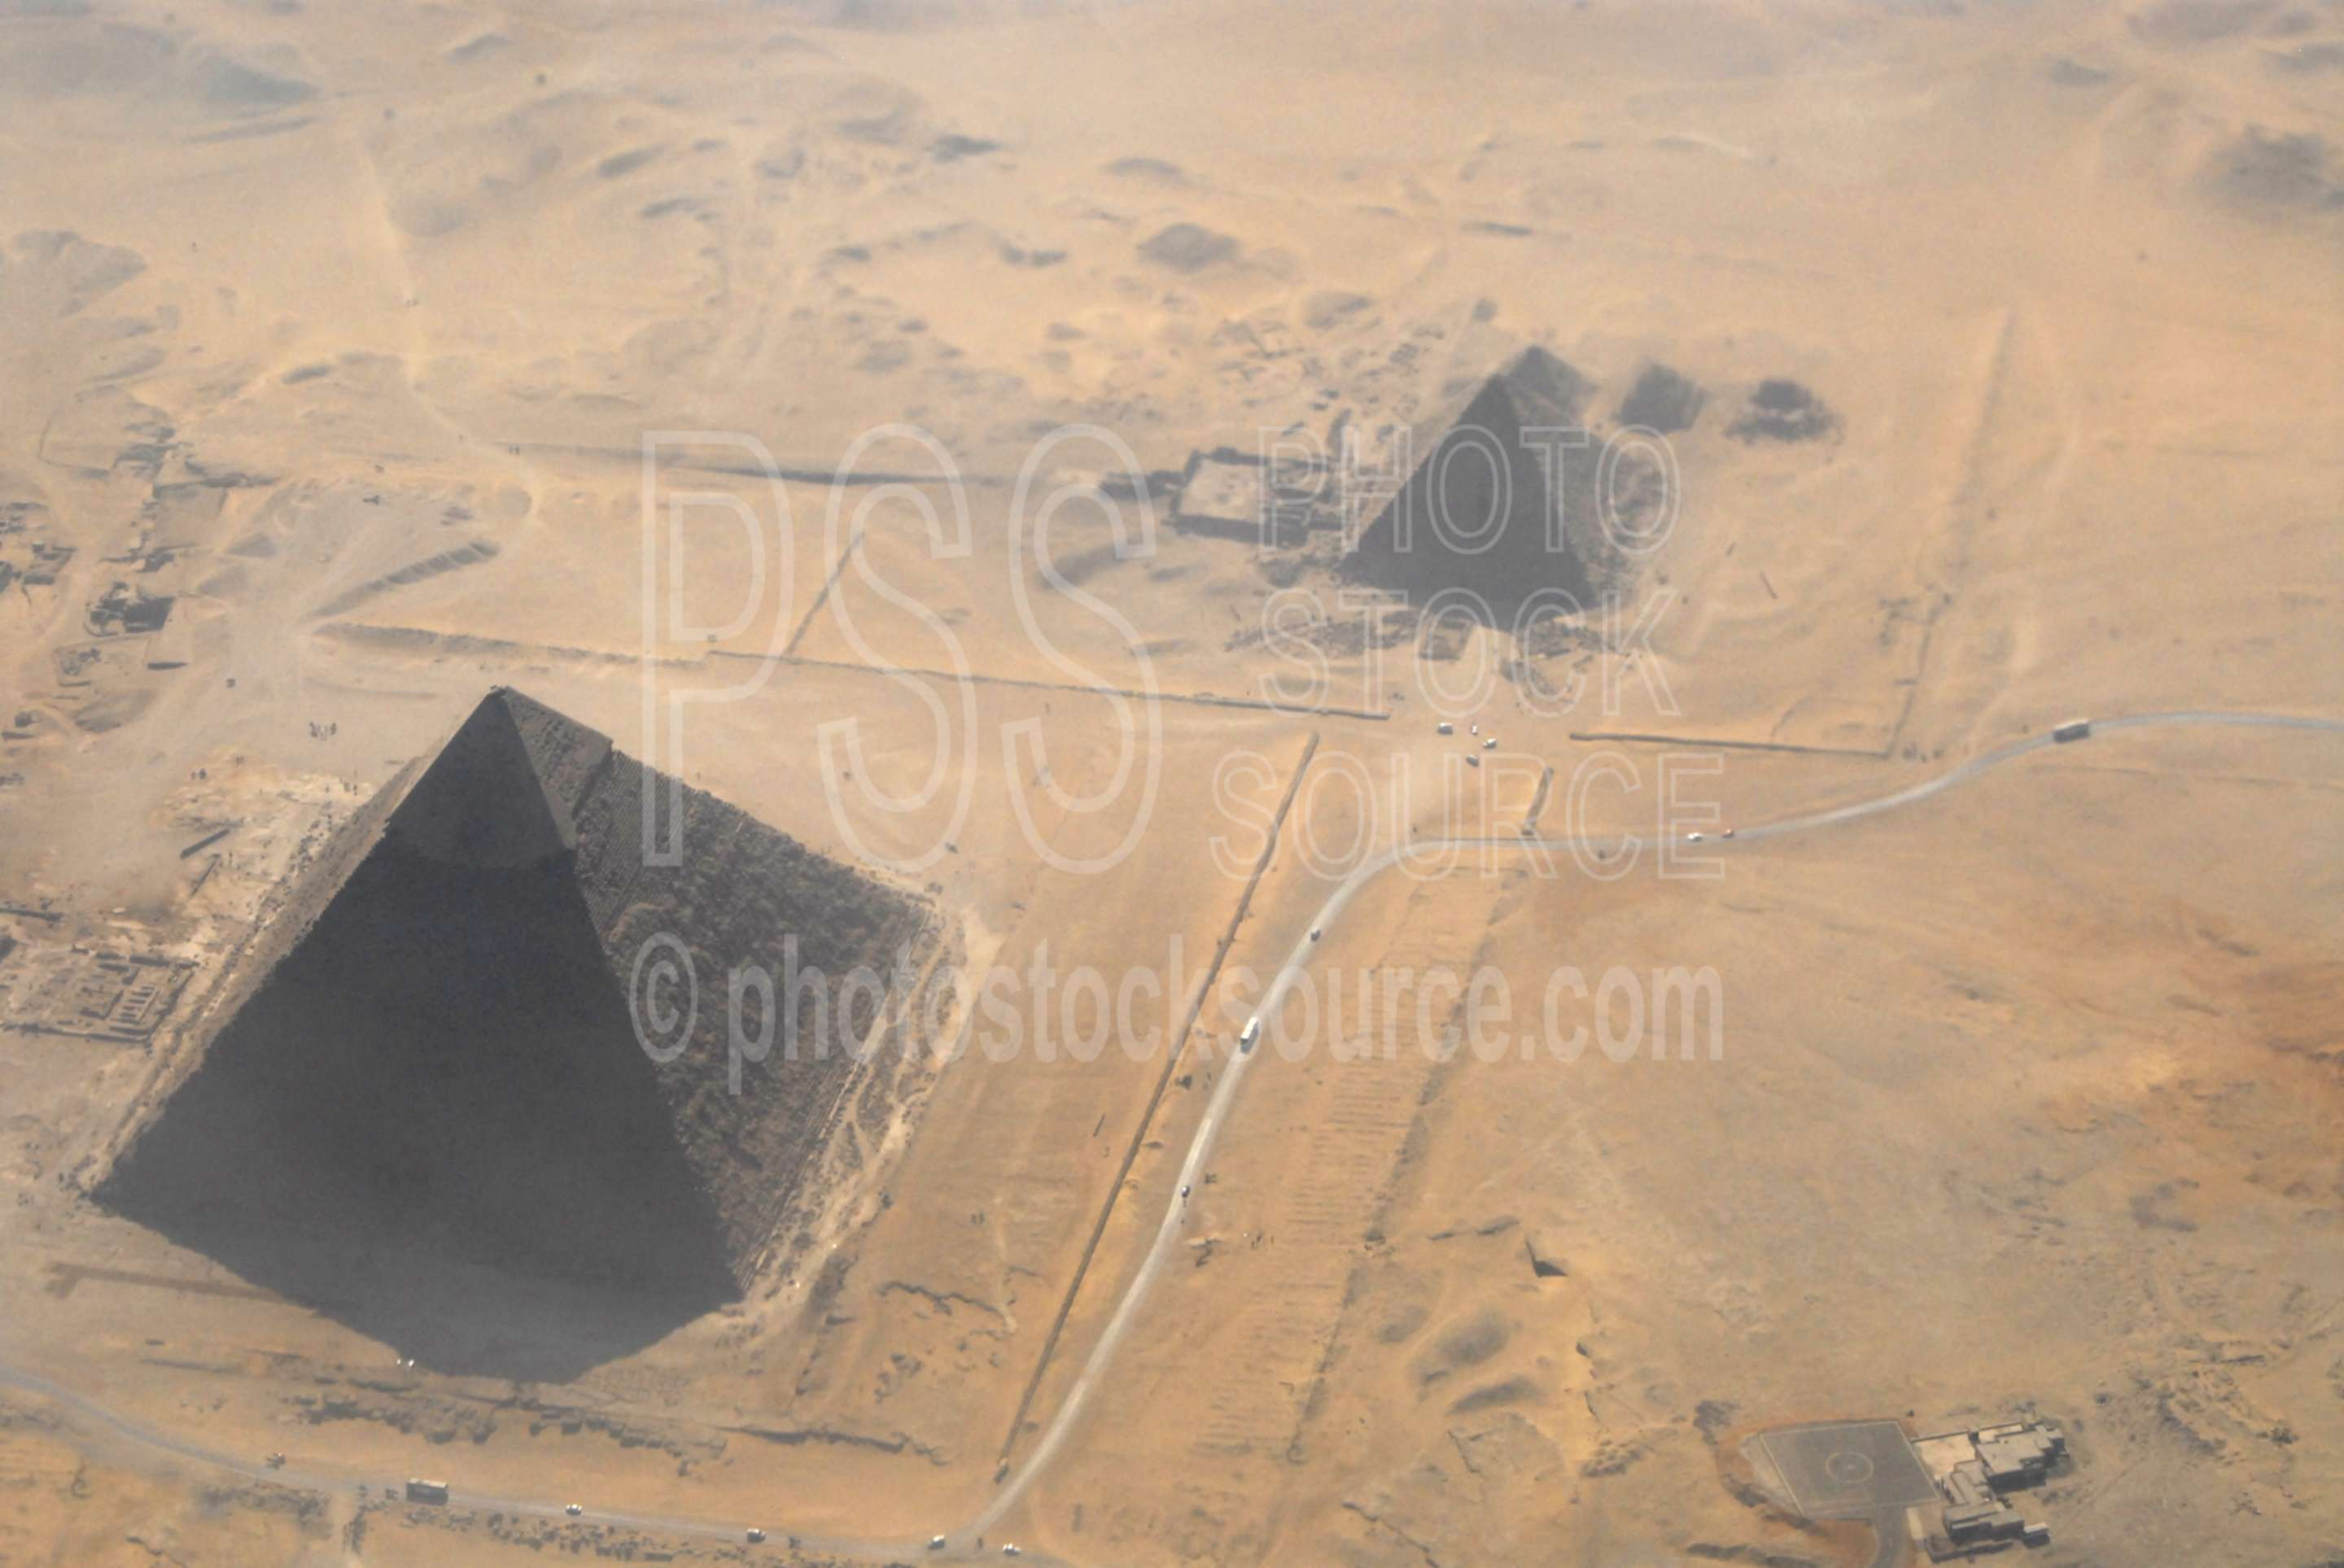 Pyramid of Khafre,aerial,pyramid,ancient,landmark,desert,aerials